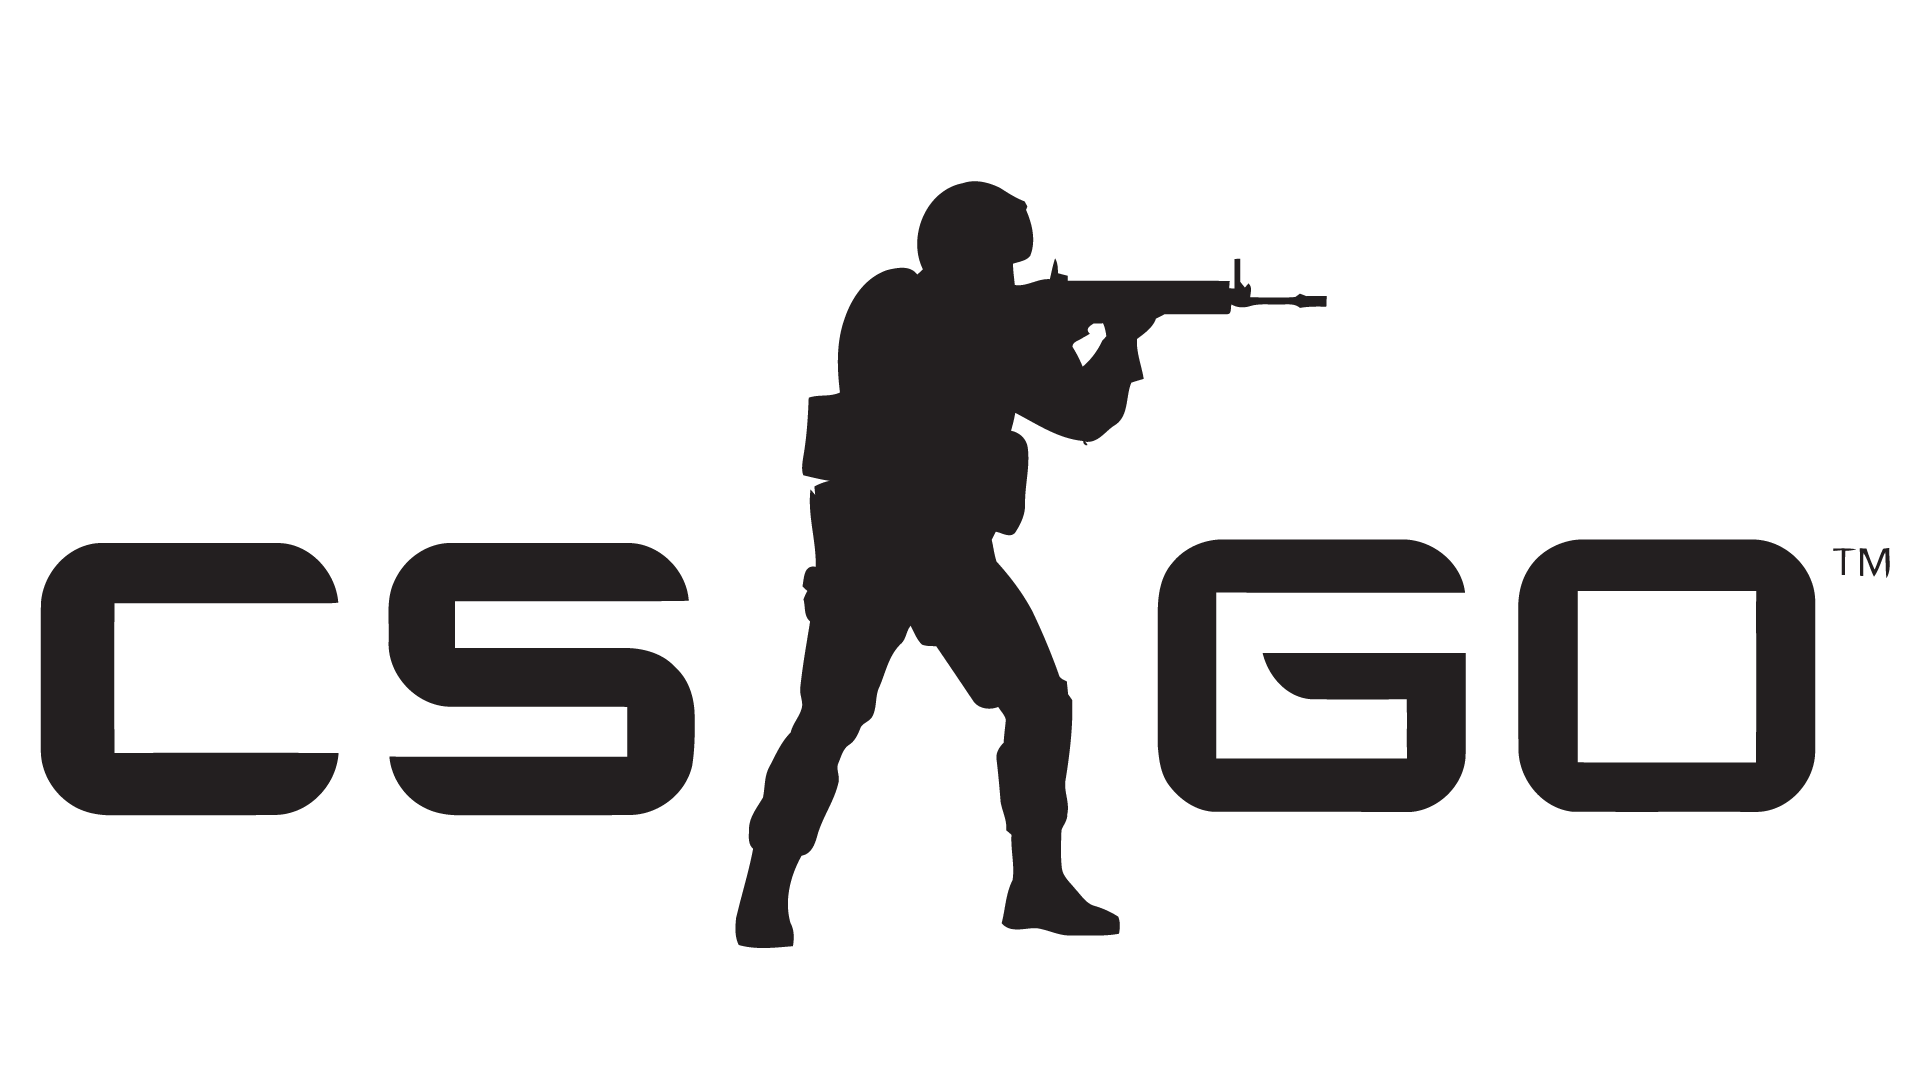 Png csgo. Logo symbol meaning history